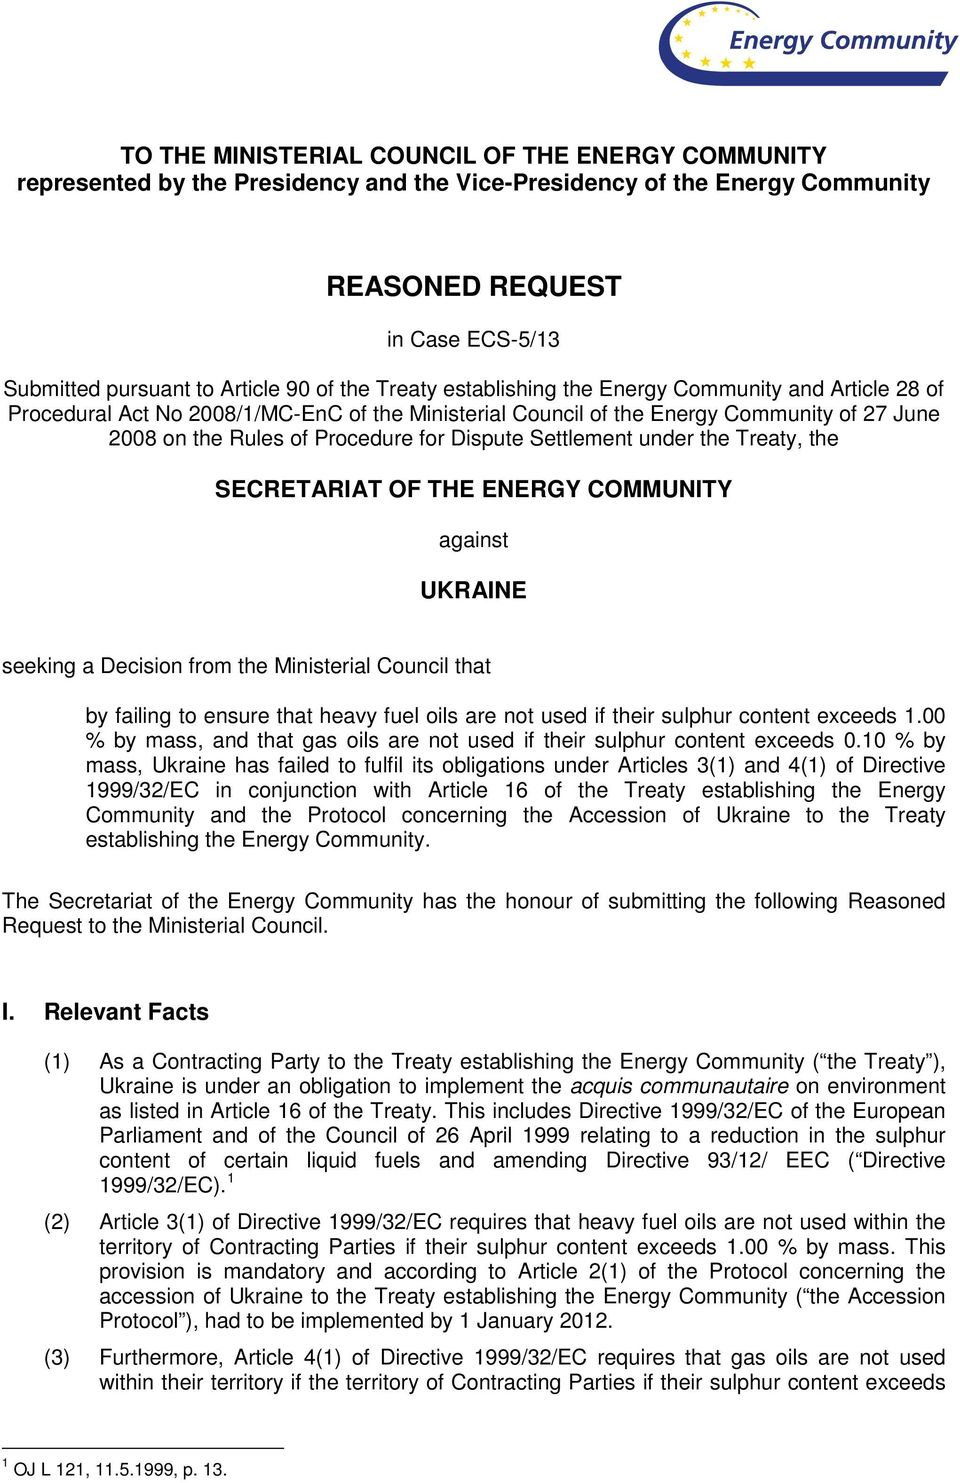 Settlement under the Treaty, the SECRETARIAT OF THE ENERGY COMMUNITY against UKRAINE seeking a Decision from the Ministerial Council that by failing to ensure that heavy fuel oils are not used if